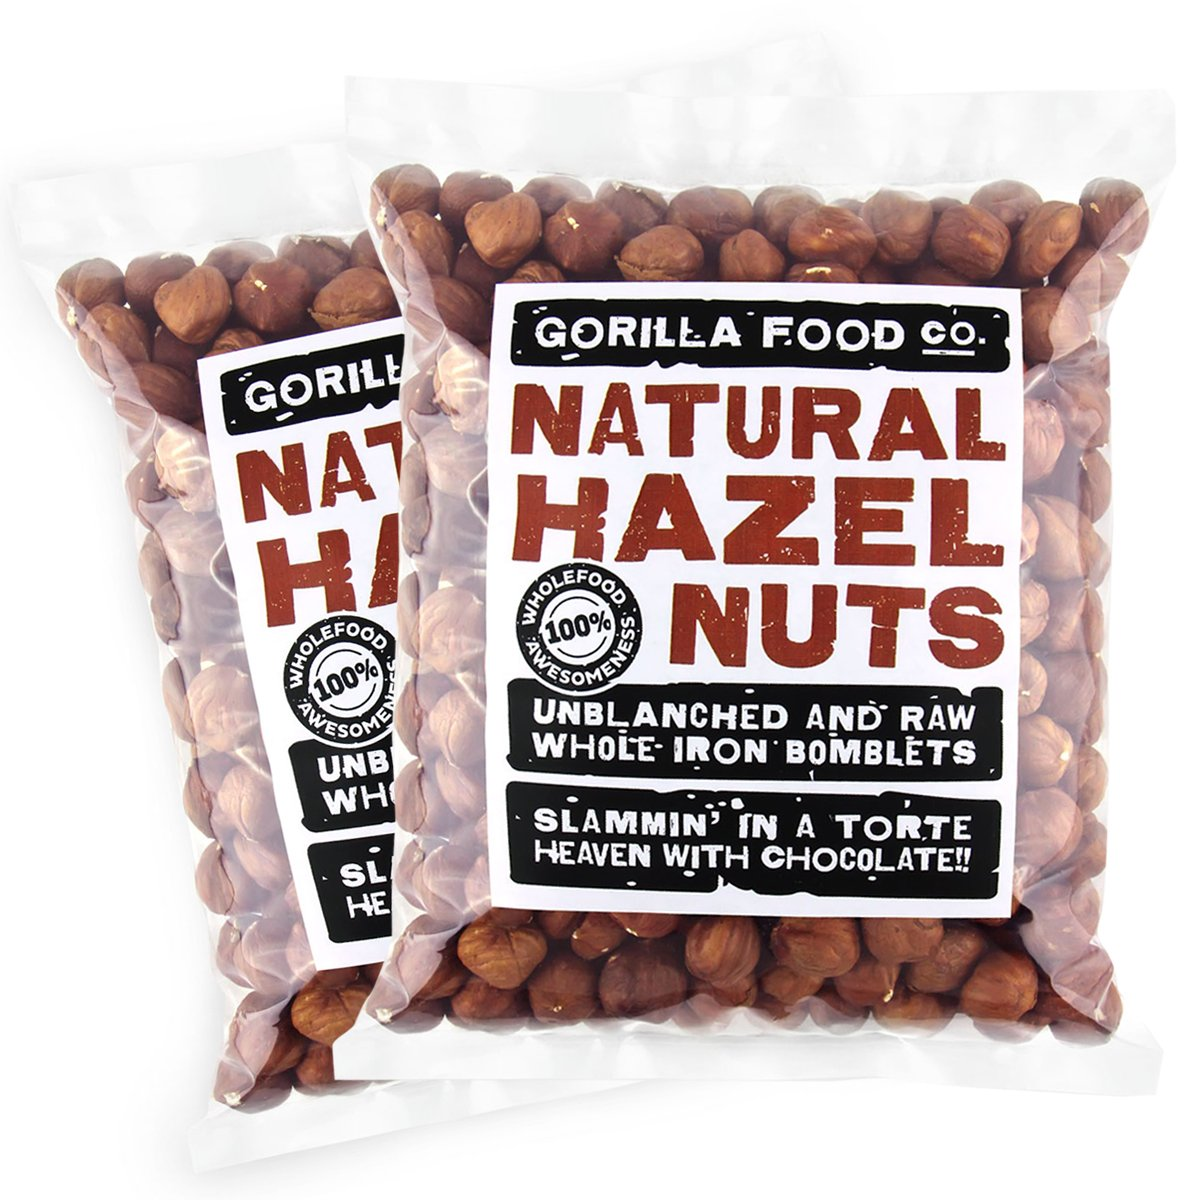 Gorilla Food Co. Hazelnuts (Filberts) Raw Whole - 2 Packs (1 Pound each) Resealable Bags